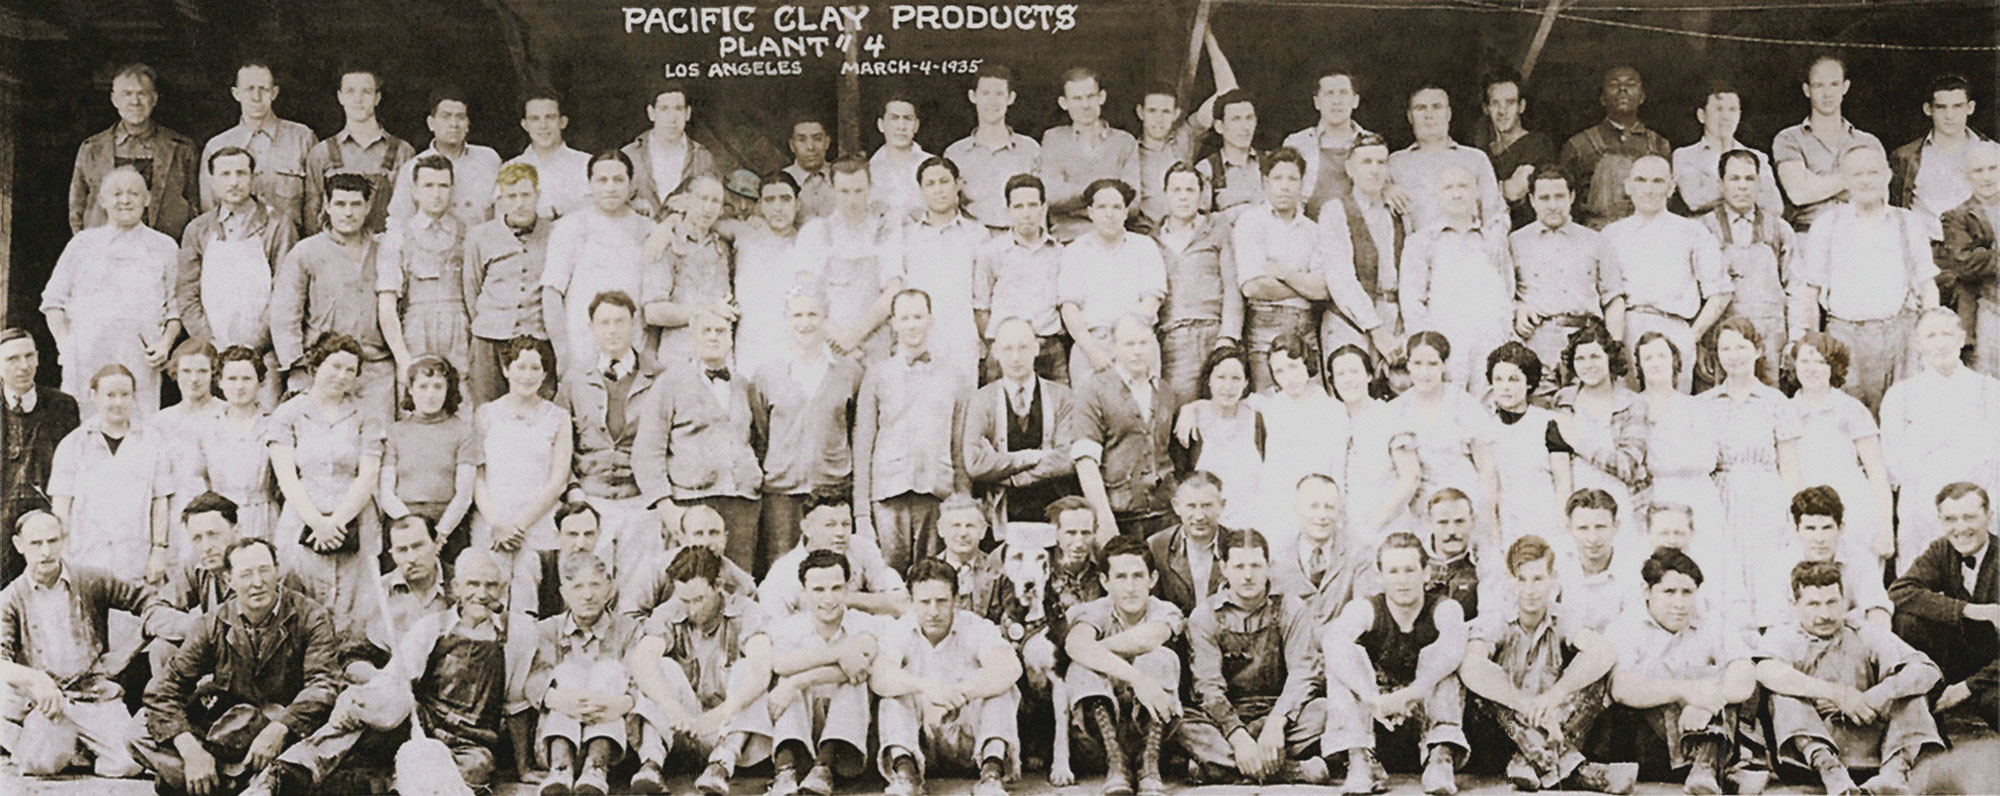 Pacific Clay Products 1935